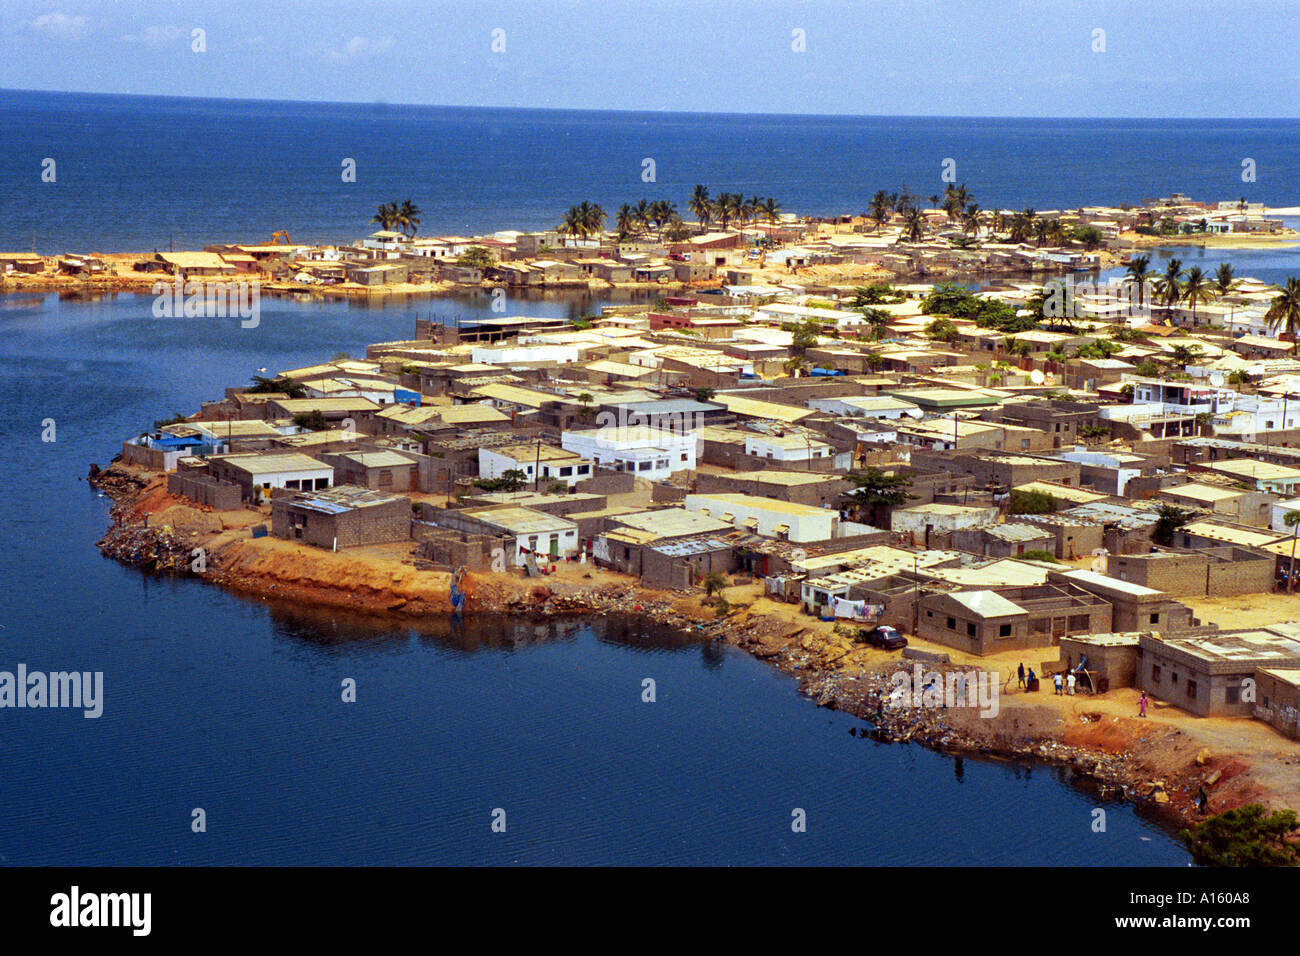 The capital of Luanda in Angola is shown in this file photo. President Jose Eduardo dos Santos who has led Angola since 1979 - Stock Image